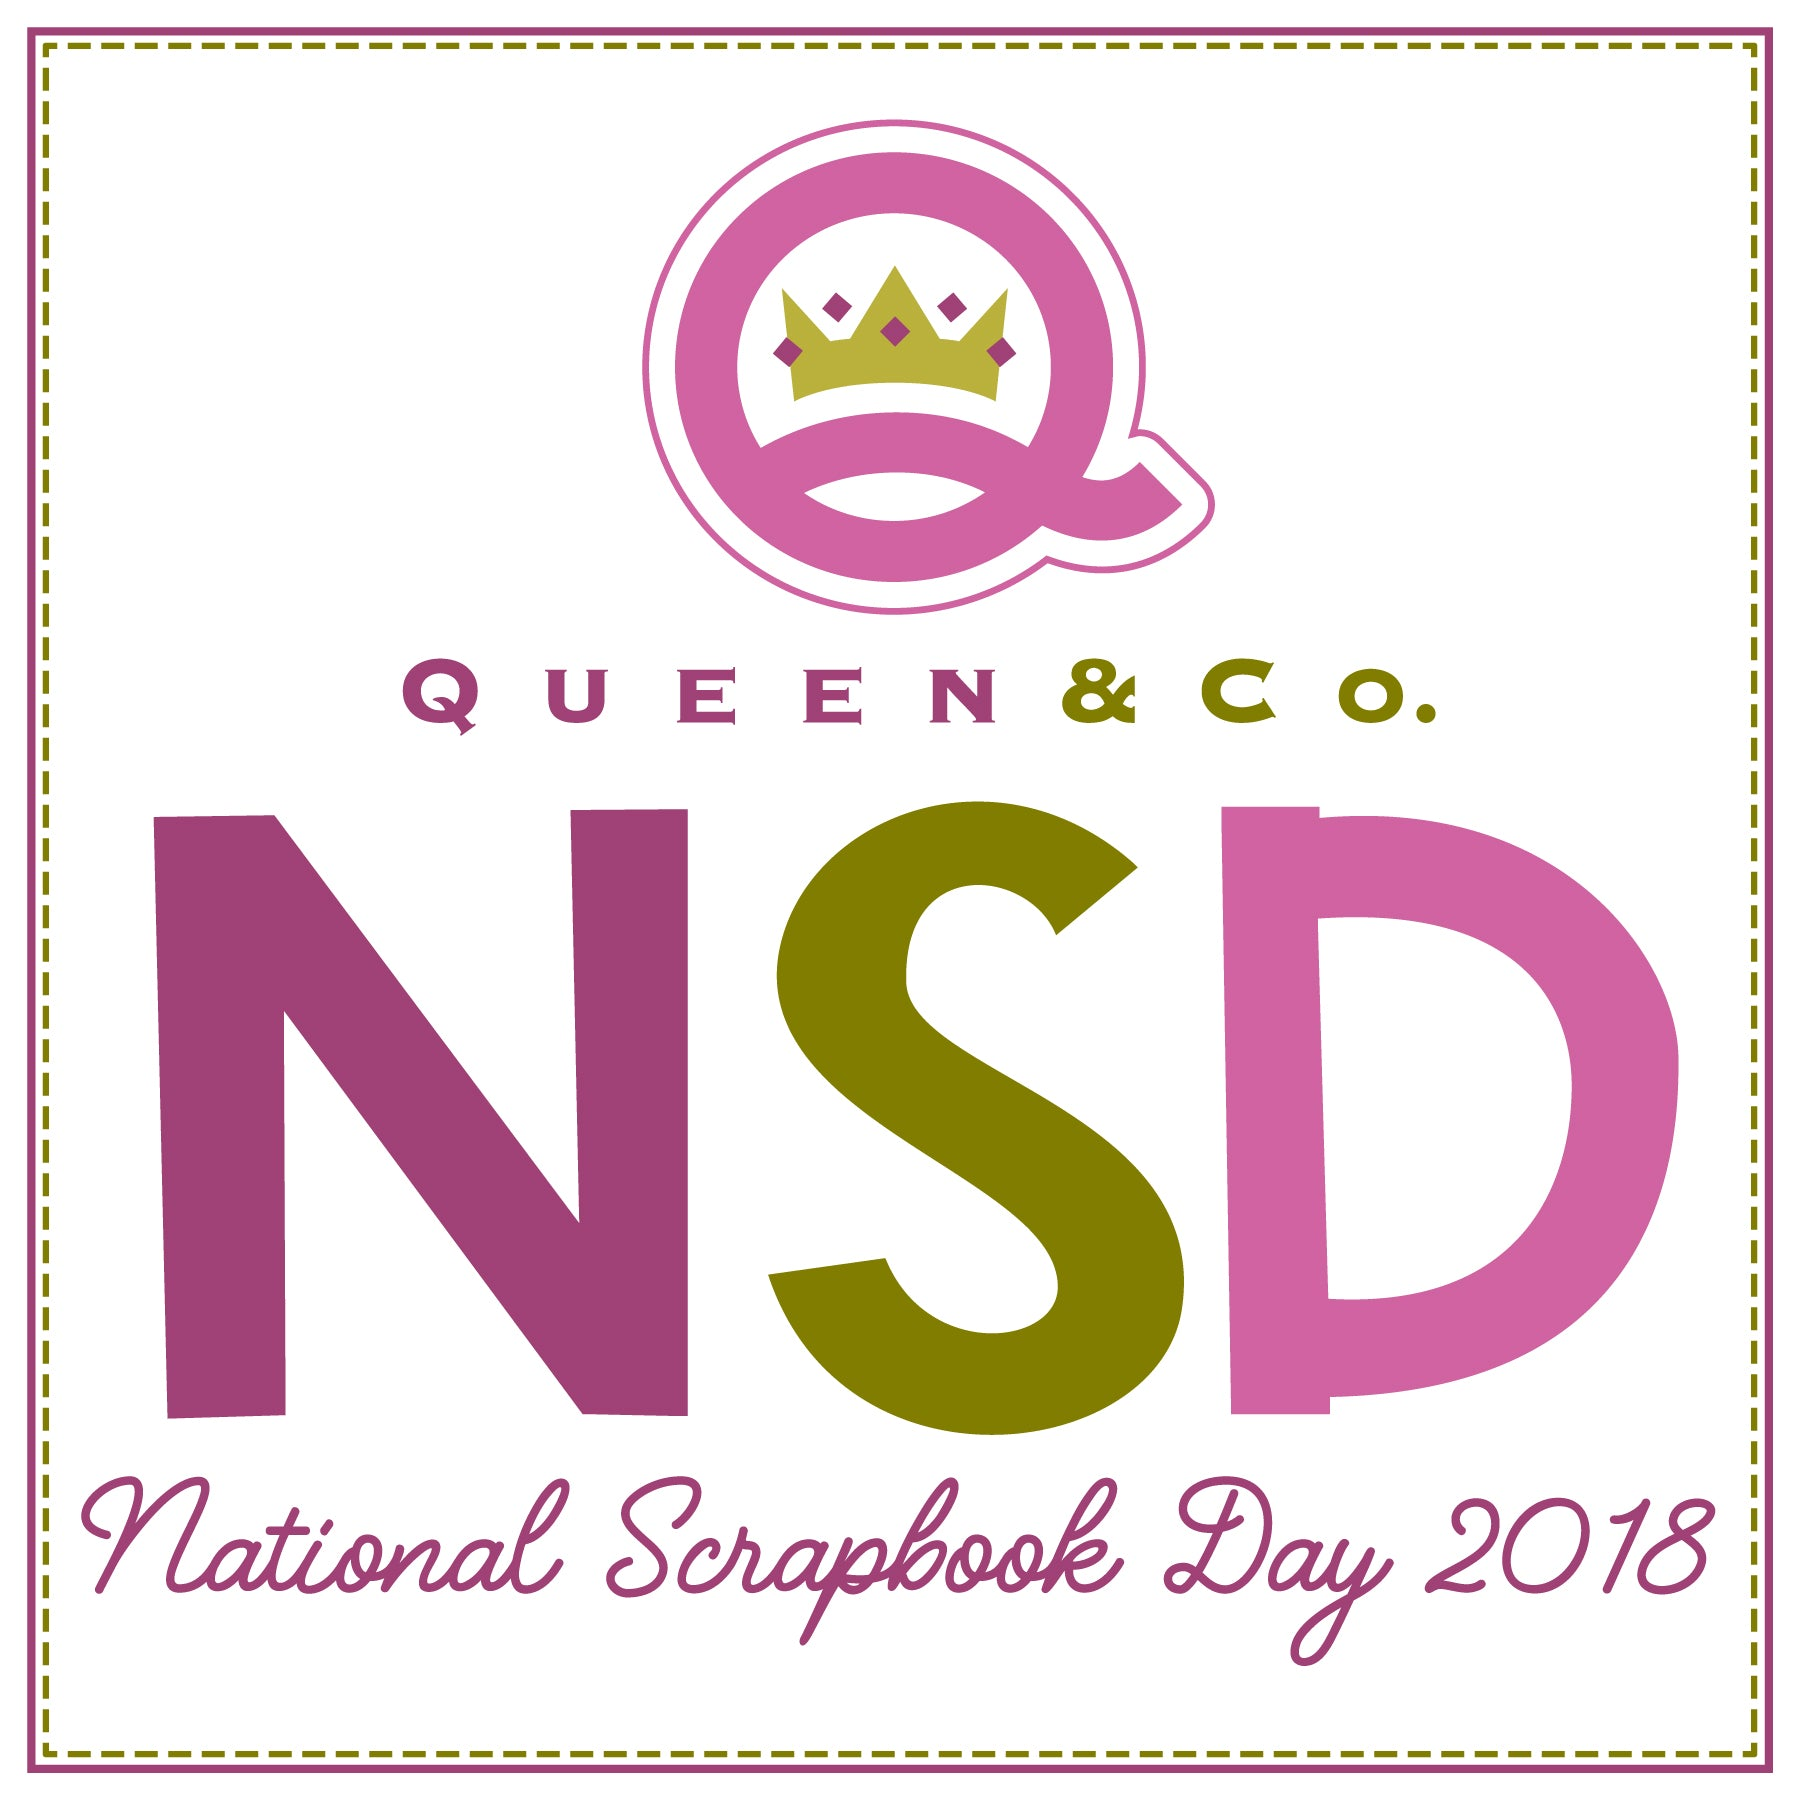 National Scrapbook Day Sale and Giveaways!